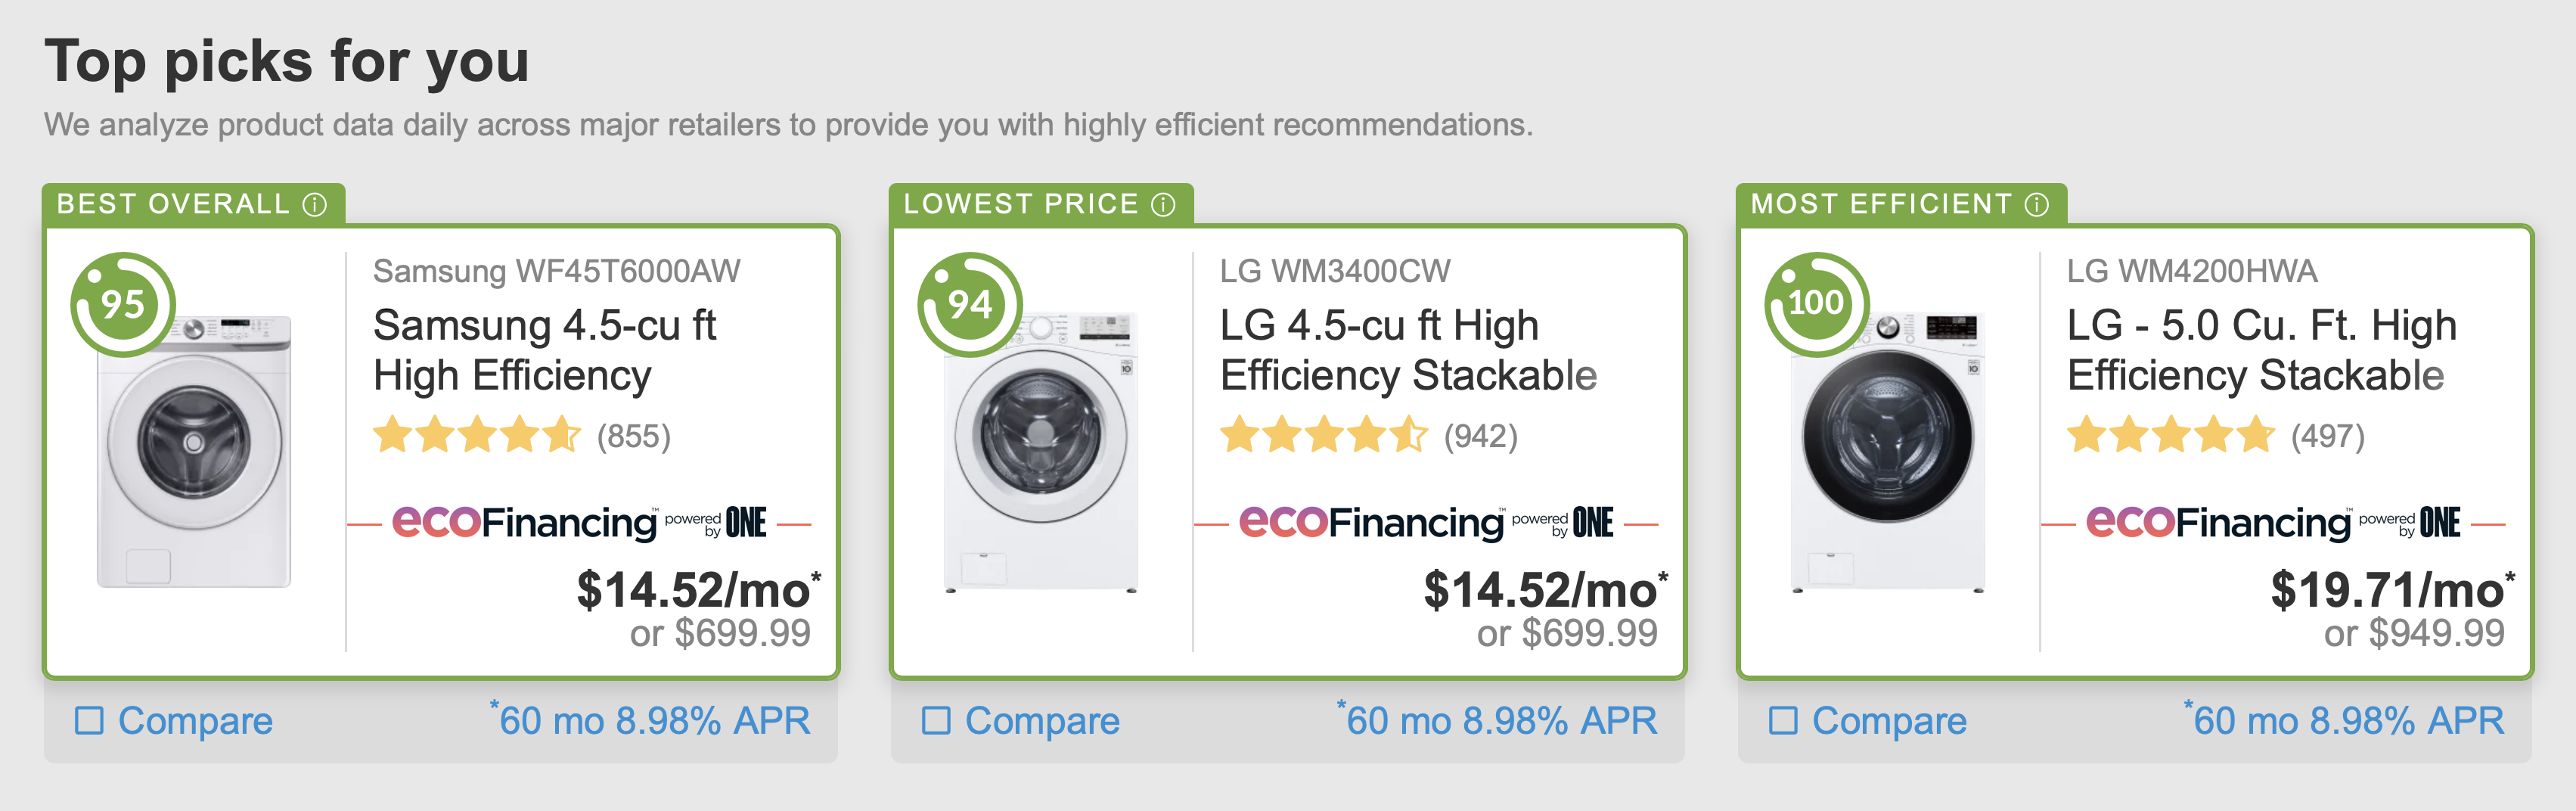 """Enervee Launches Innovative """"Eco Financing"""" Program to Help Consumers Purchase Energy-Efficient Appliances"""